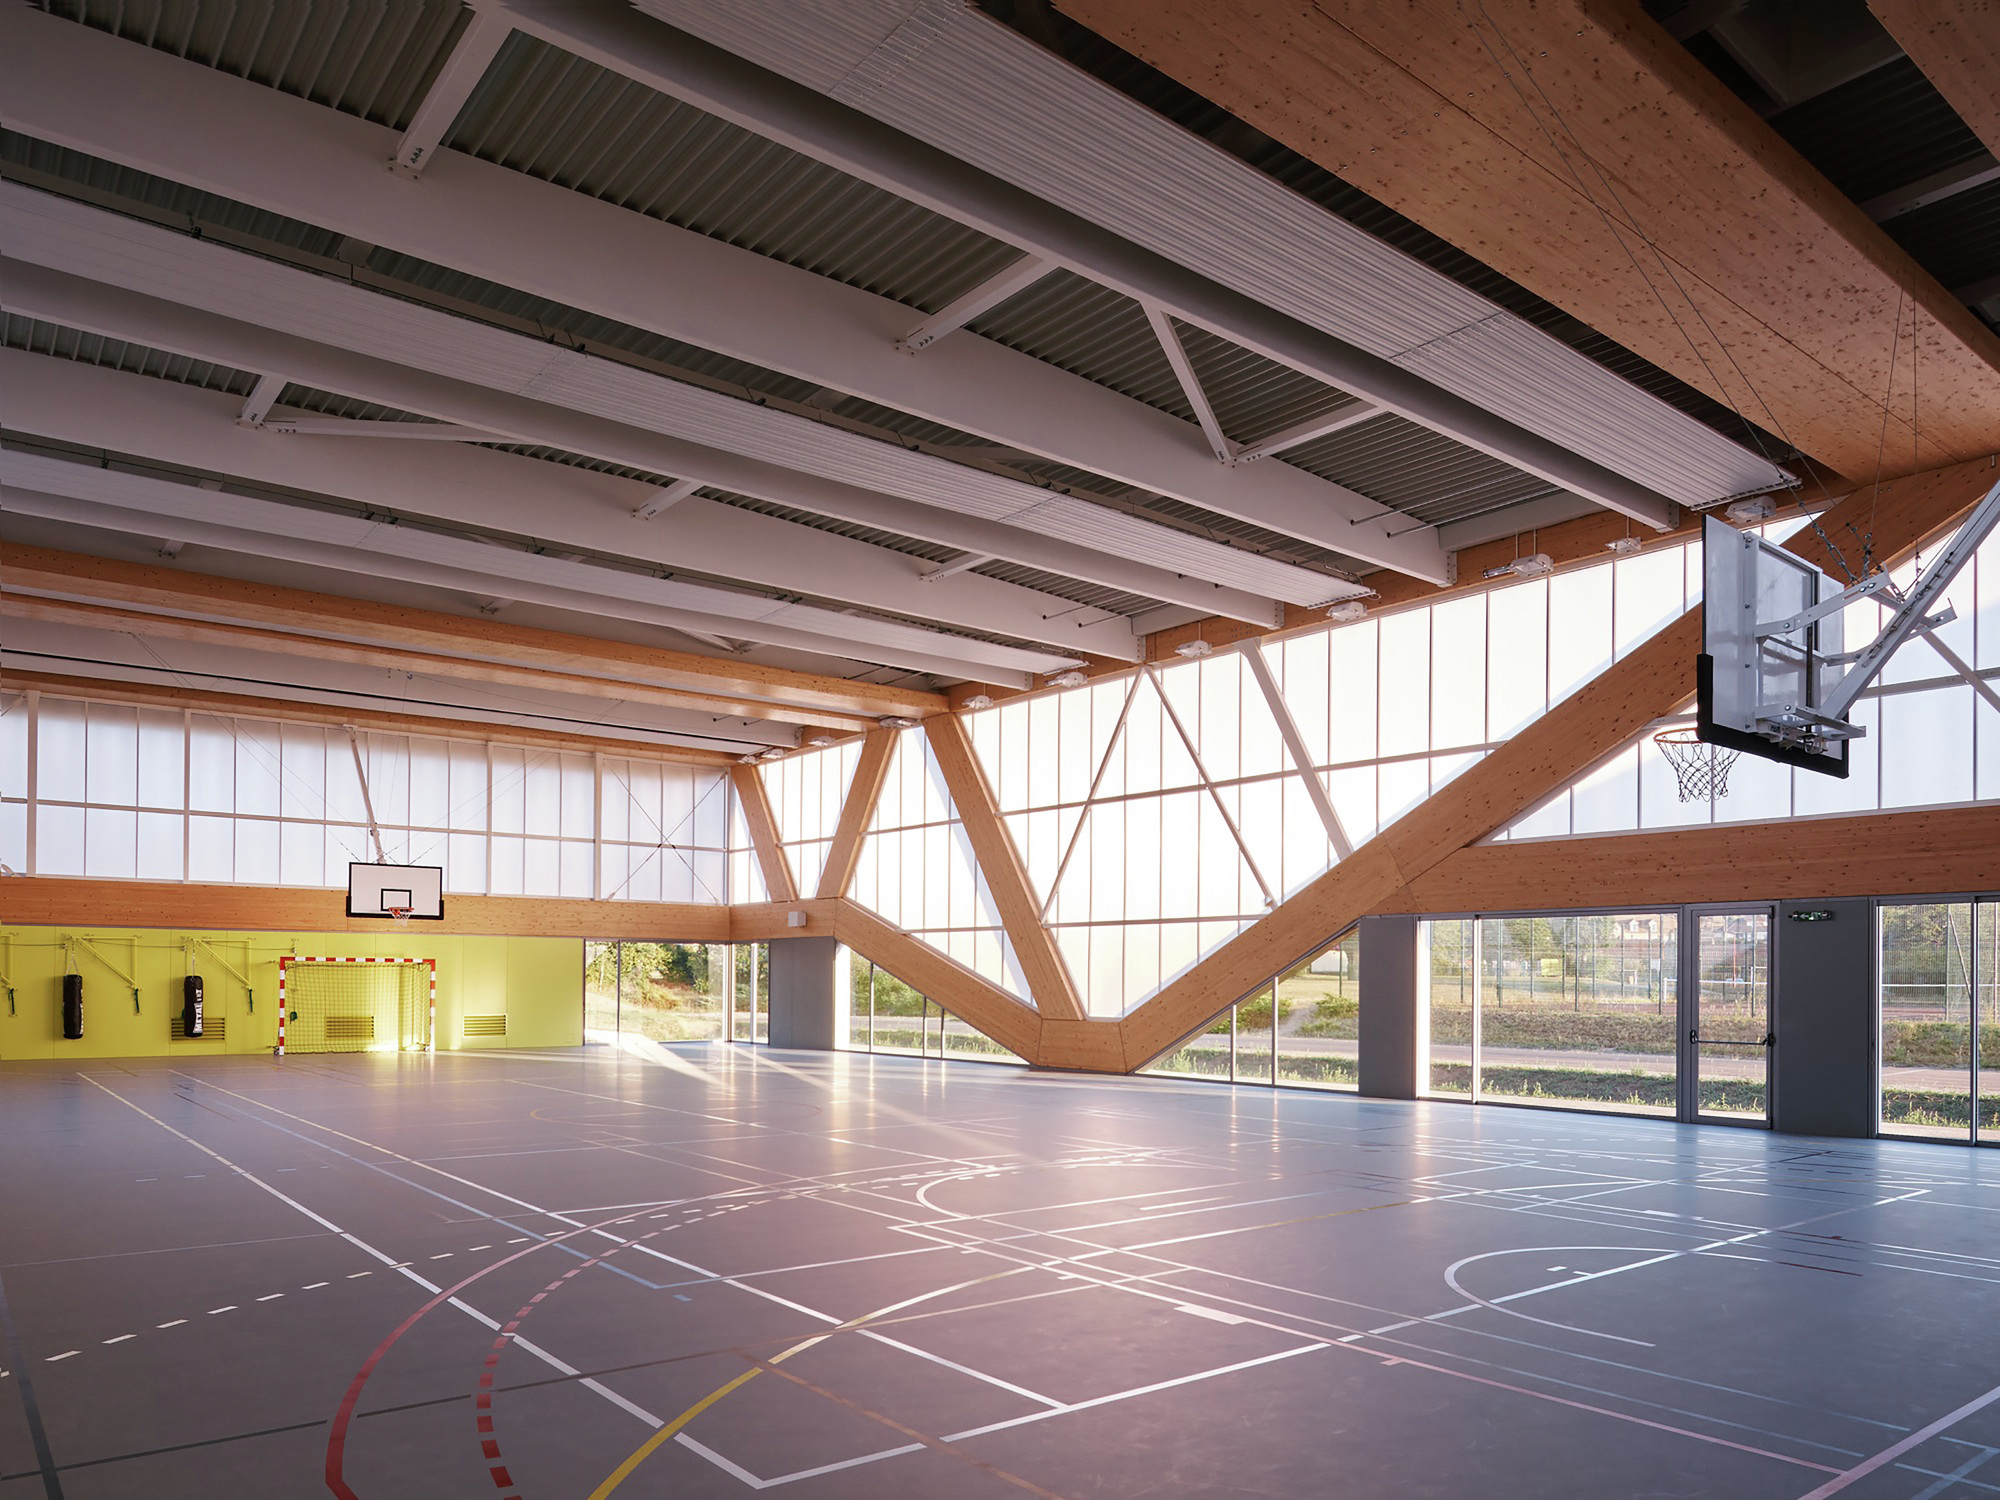 Nathalie mauclair gymnasium schemaa archdaily for Schule design